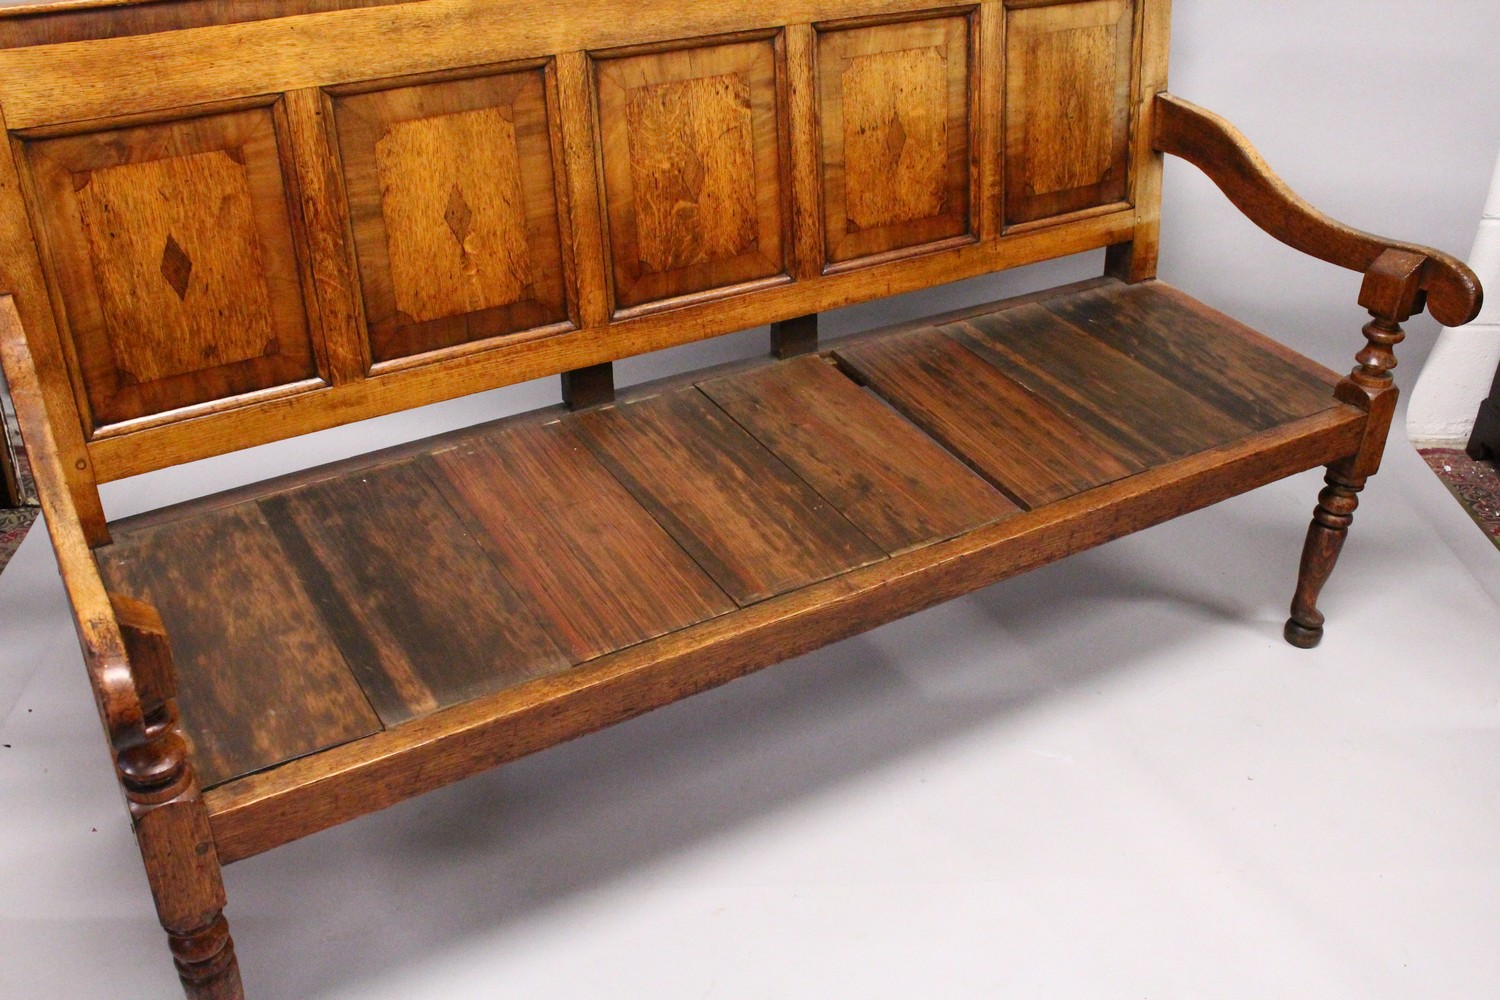 Lot 1029 - AN 18TH CENTURY OAK PANEL BACK SETTLE, with five mahogany banded panels, loose cushion, on turned